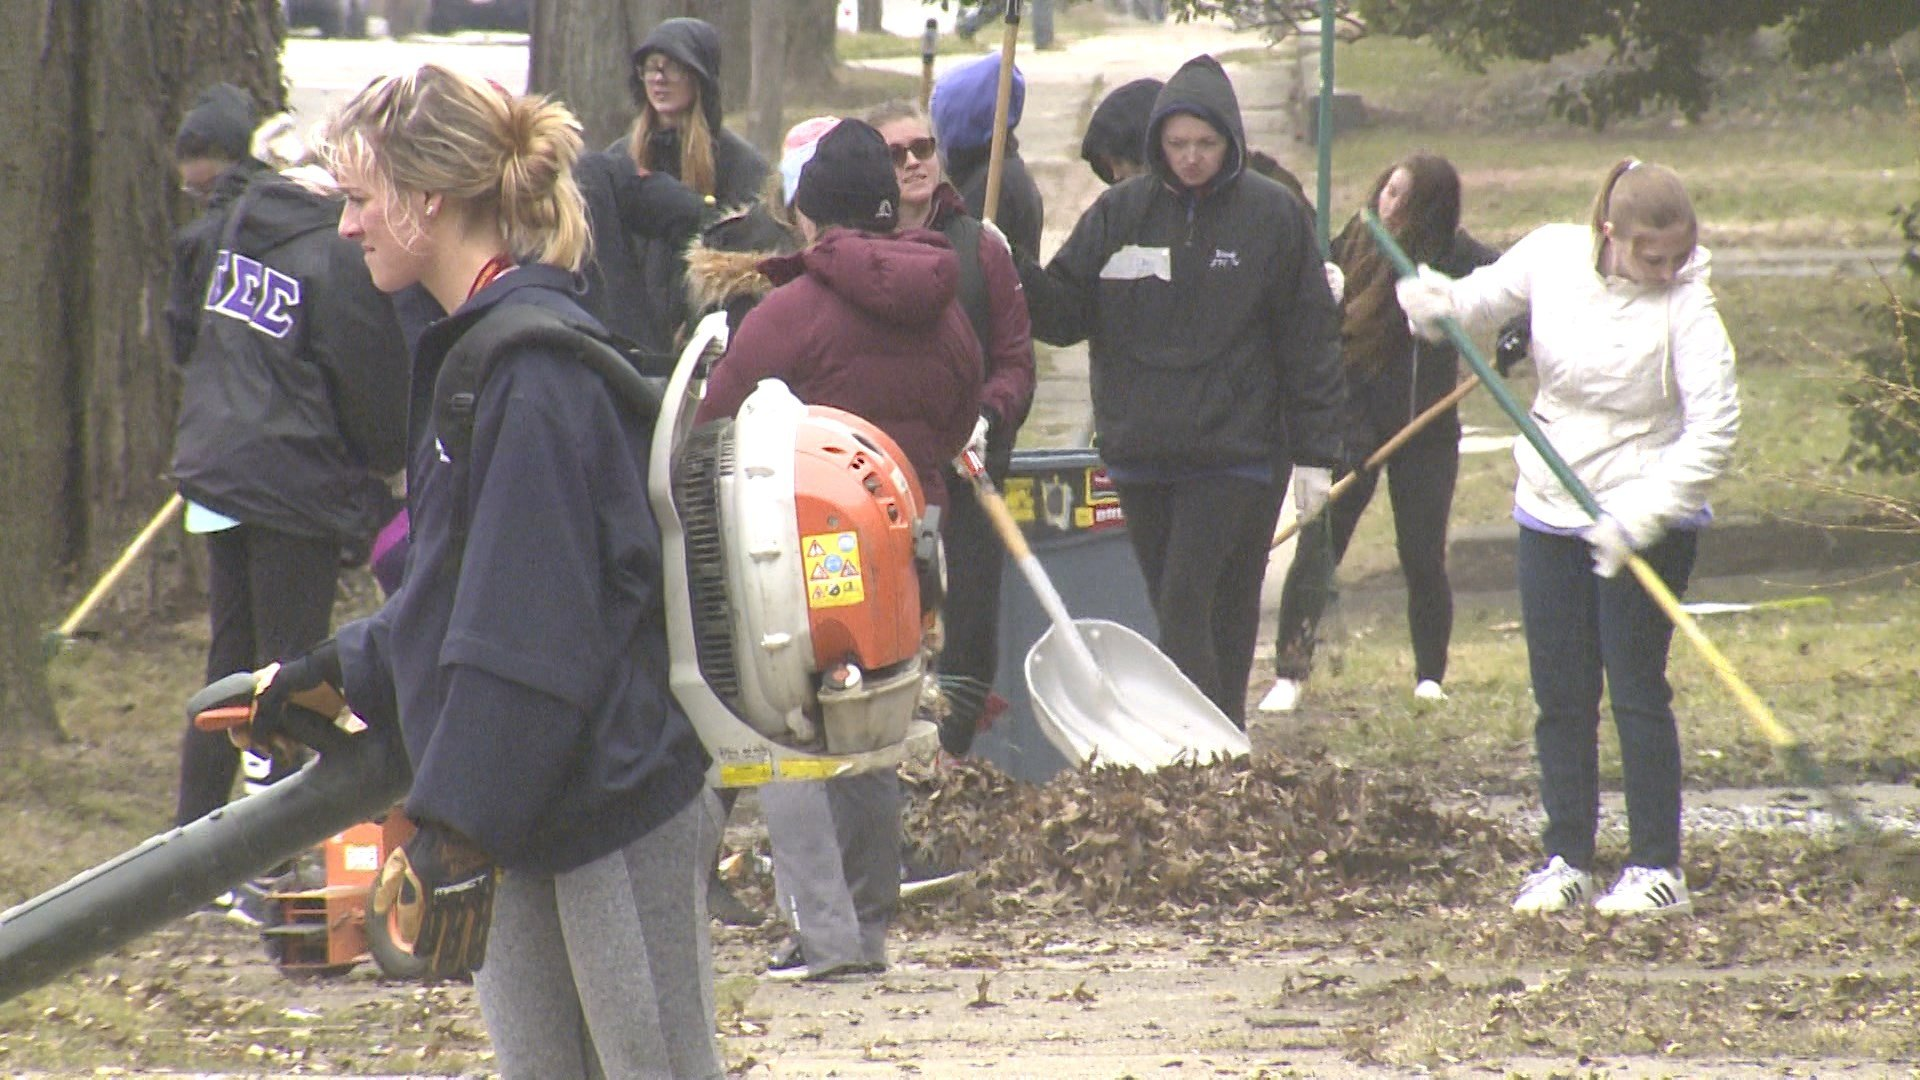 The Gannon University community cleans up the neighborhood near West 8th and Popular in Erie.